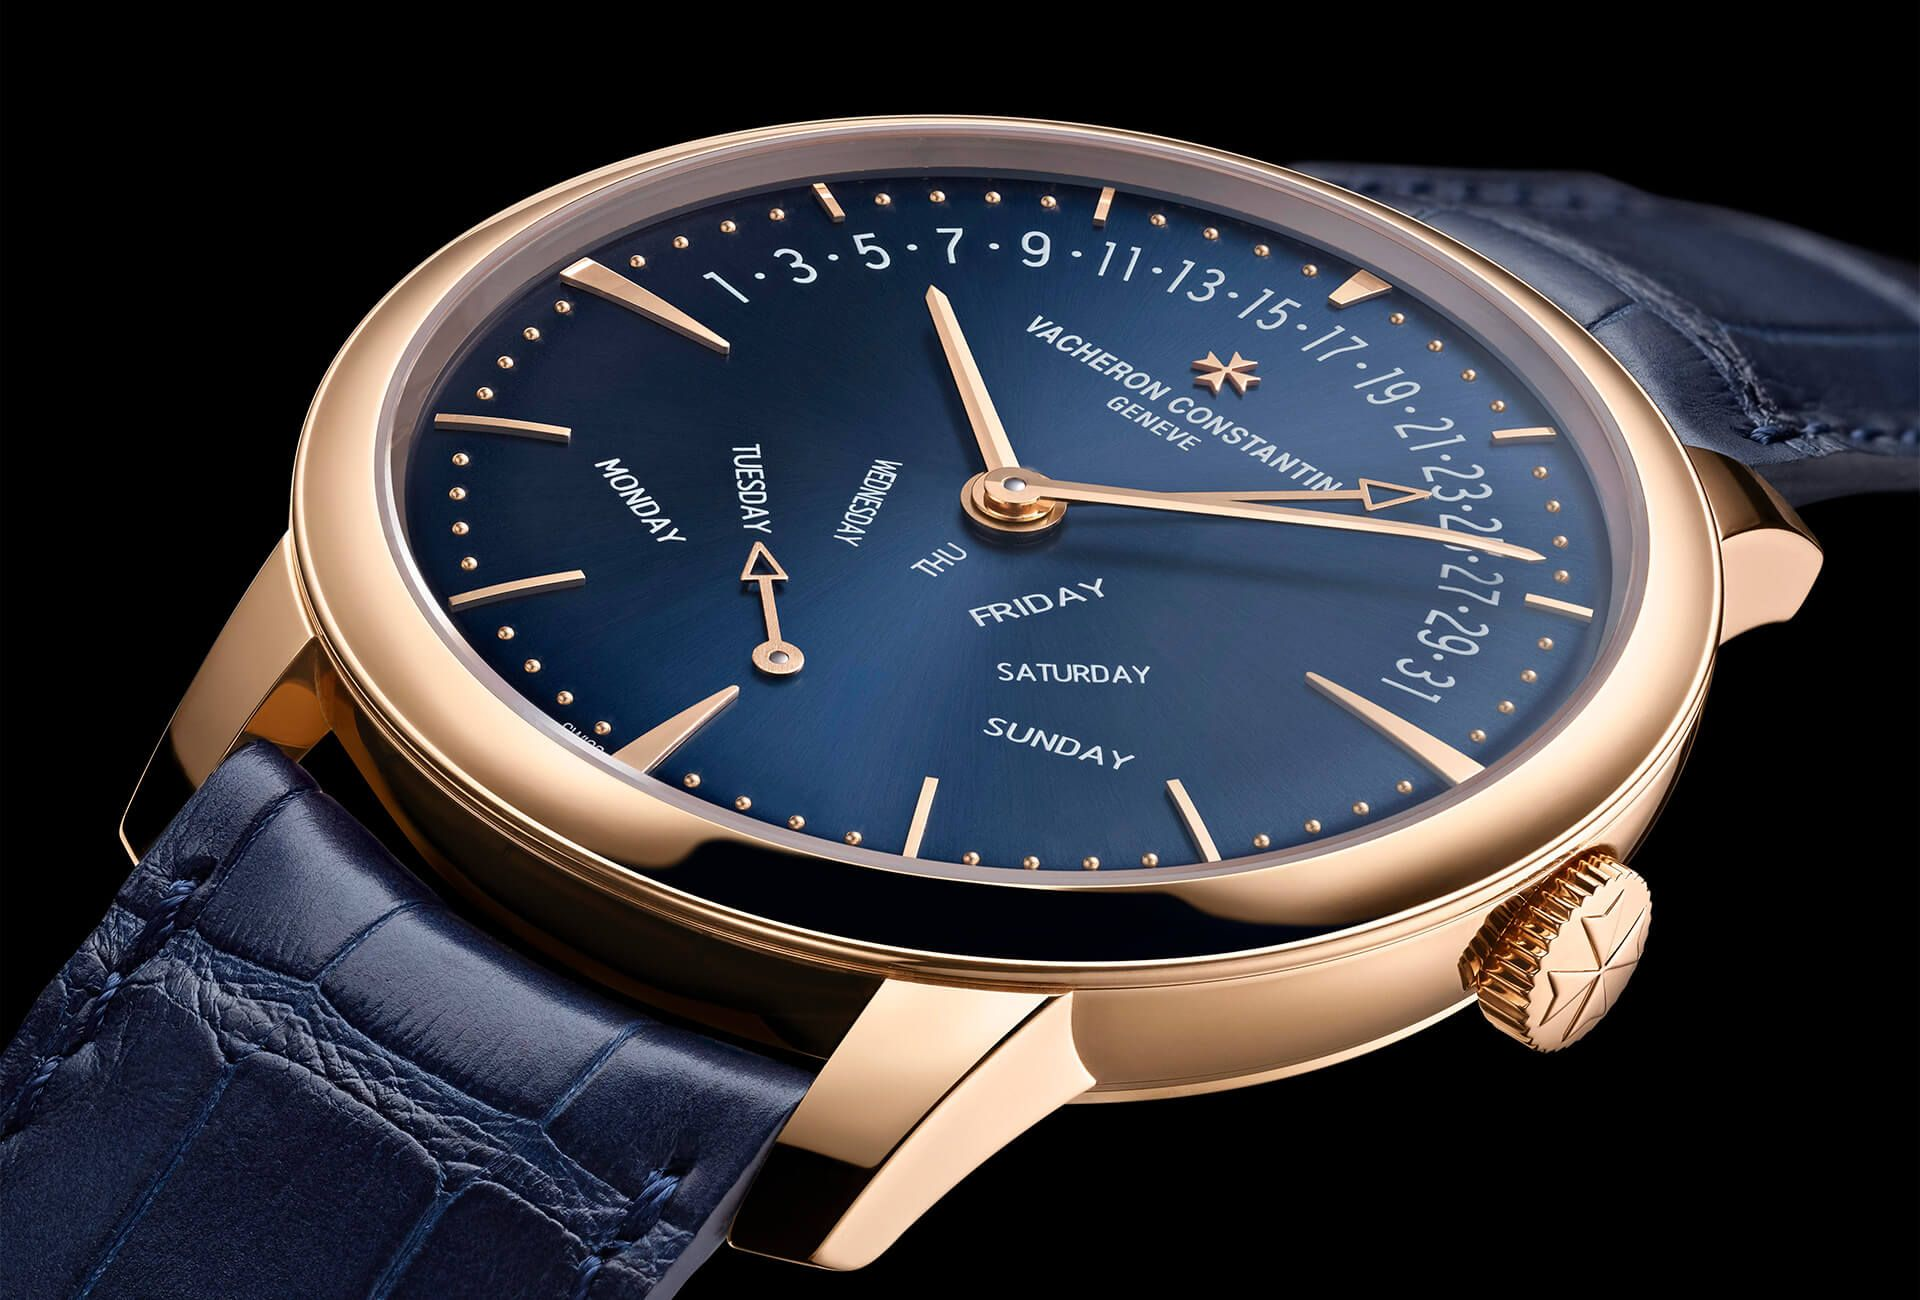 The Latest Watch And Jewellery Releases To Look Out For During Ion Orchard's 10th Anniversary: Vacheron Constantin And A. Lange & Söhne